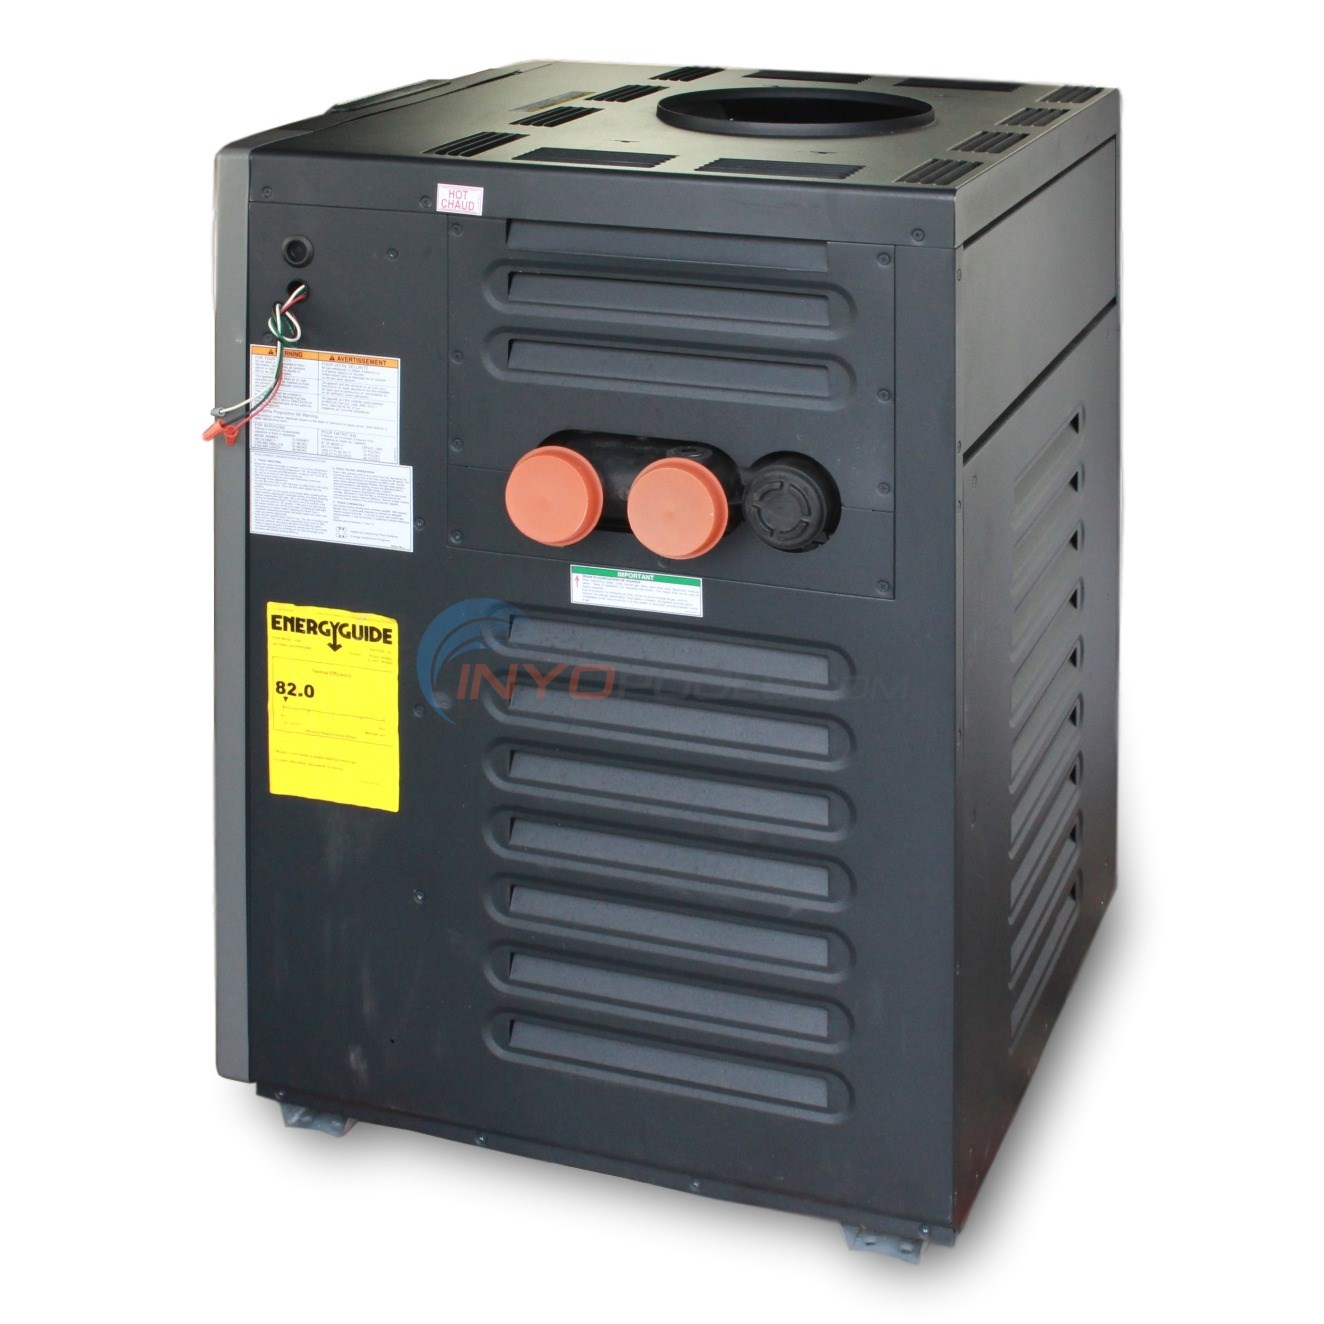 raypak gas heater 03?format=jpg&scale=both&anchor=middlecenter&autorotate=true&mode=pad&width=650&height=650 raypak heater 406,000 btu ng ele pr406aen inyopools com raypak hi delta wiring diagram at eliteediting.co